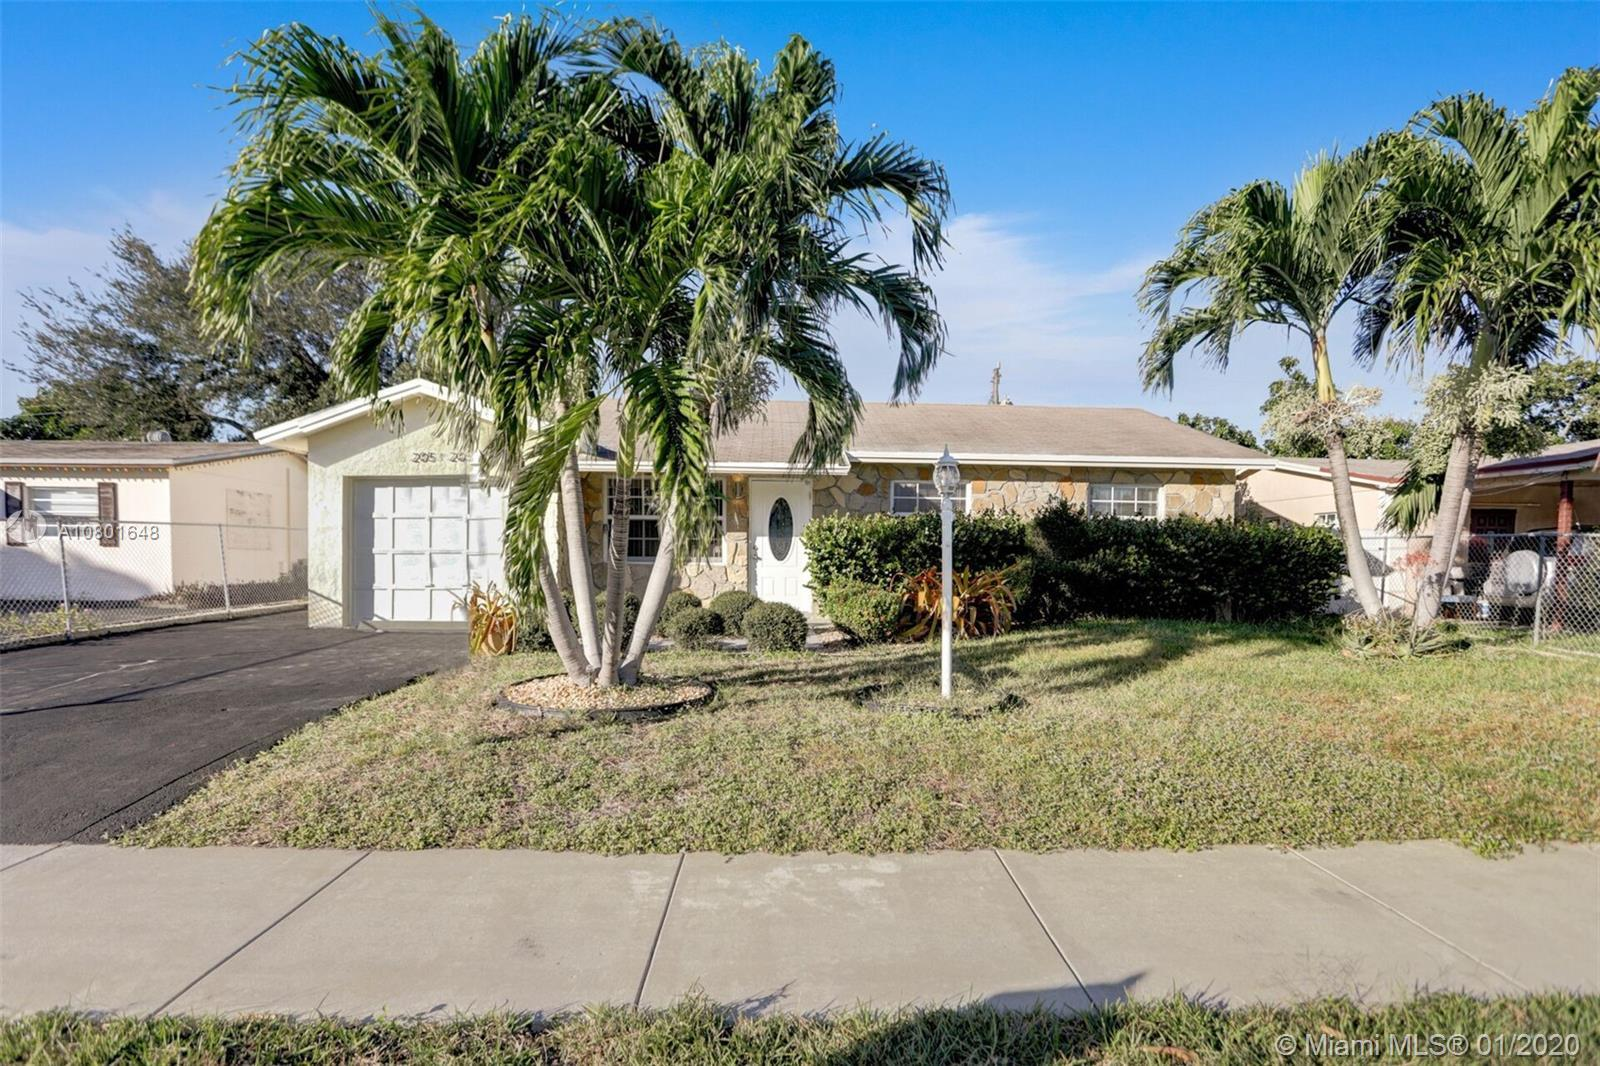 BEAUTIFULLY FULLY REMODELED 4/2 HOME IN THE HEART OF POMPANO BEACH! PERFECT STARTER HOME OR RENTAL O